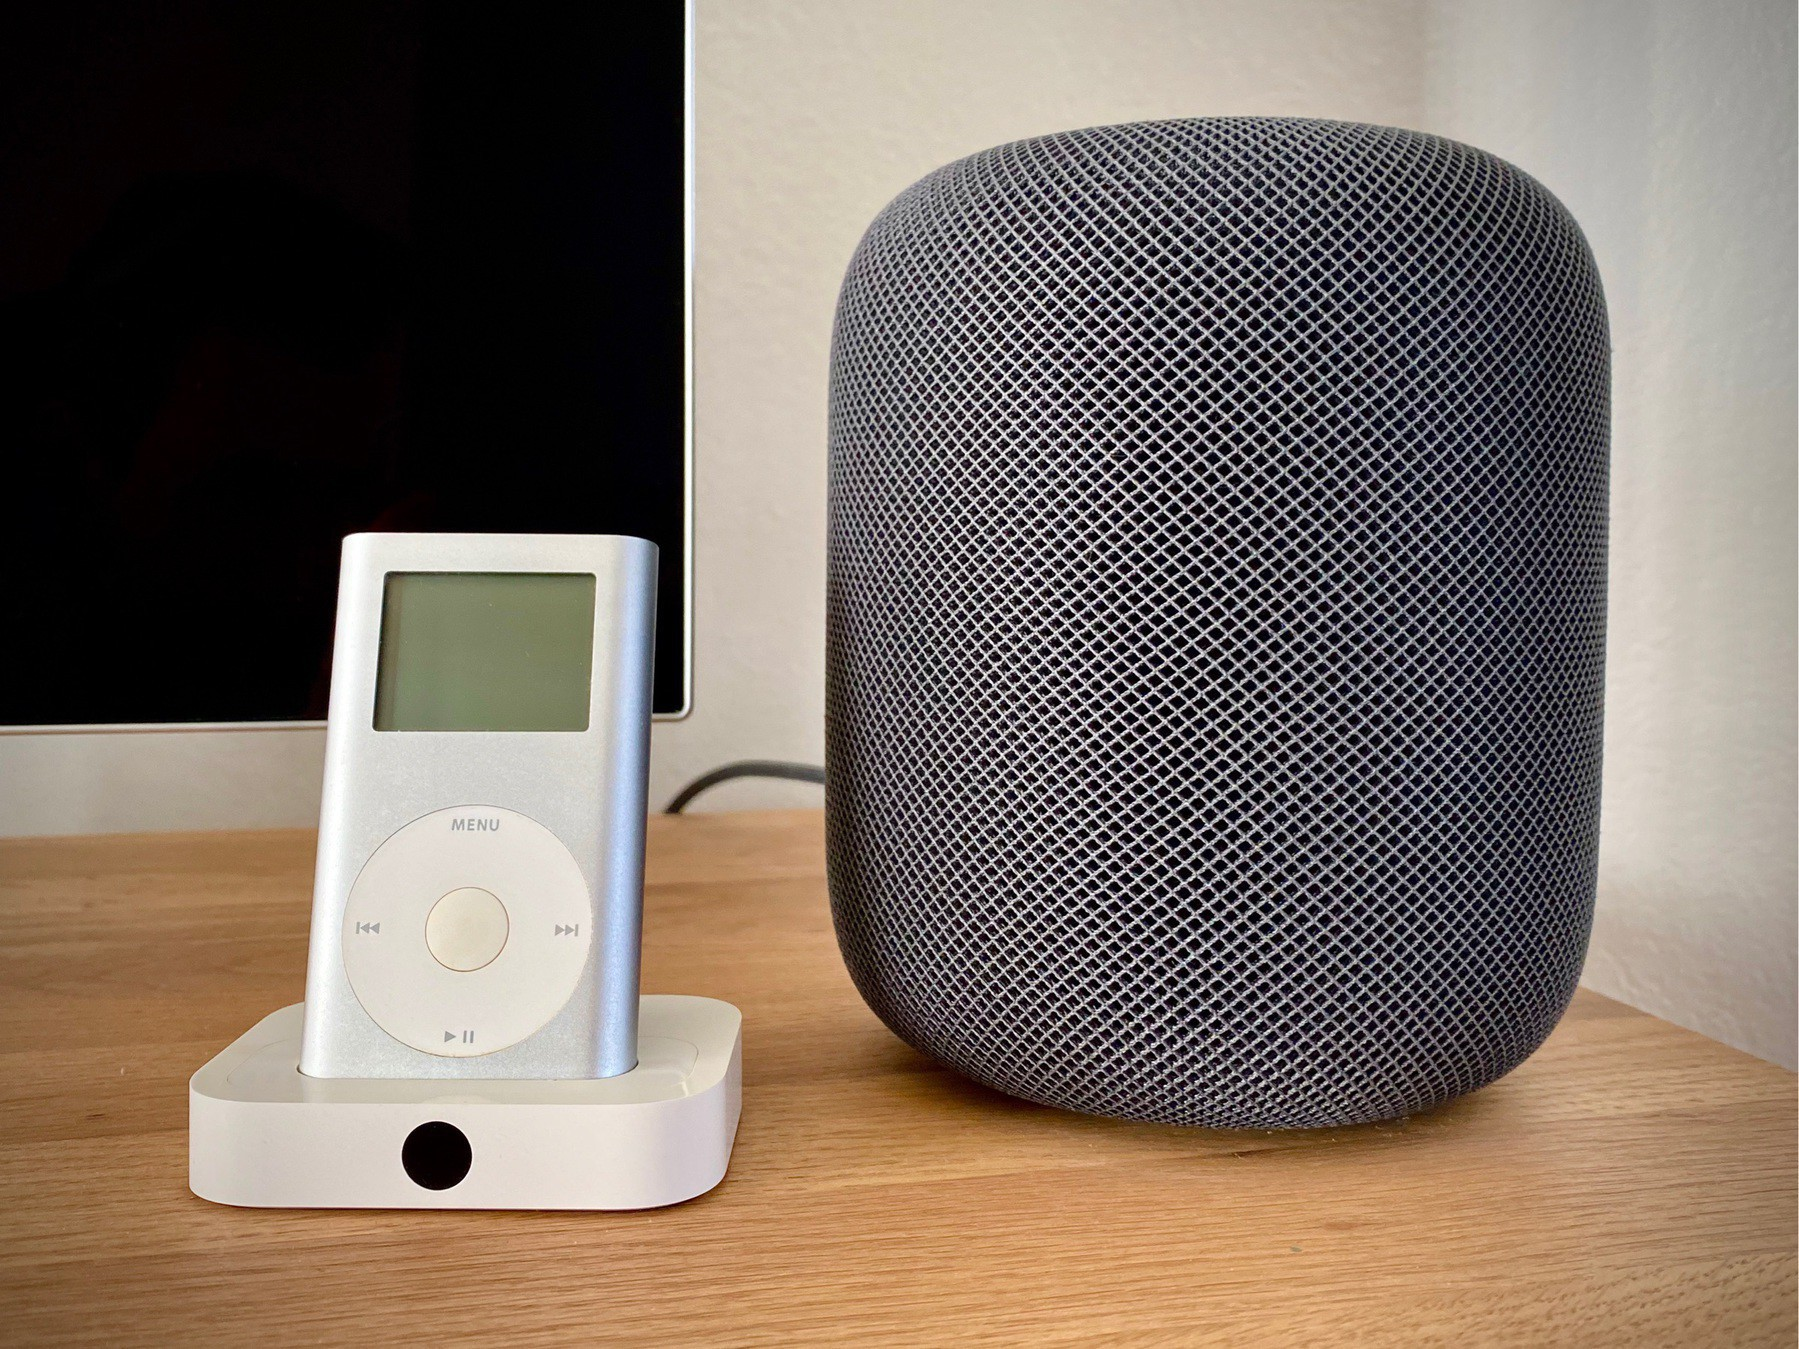 A silver iPod mini in an Apple Universal Dock sits next to a HomePod in space grey.